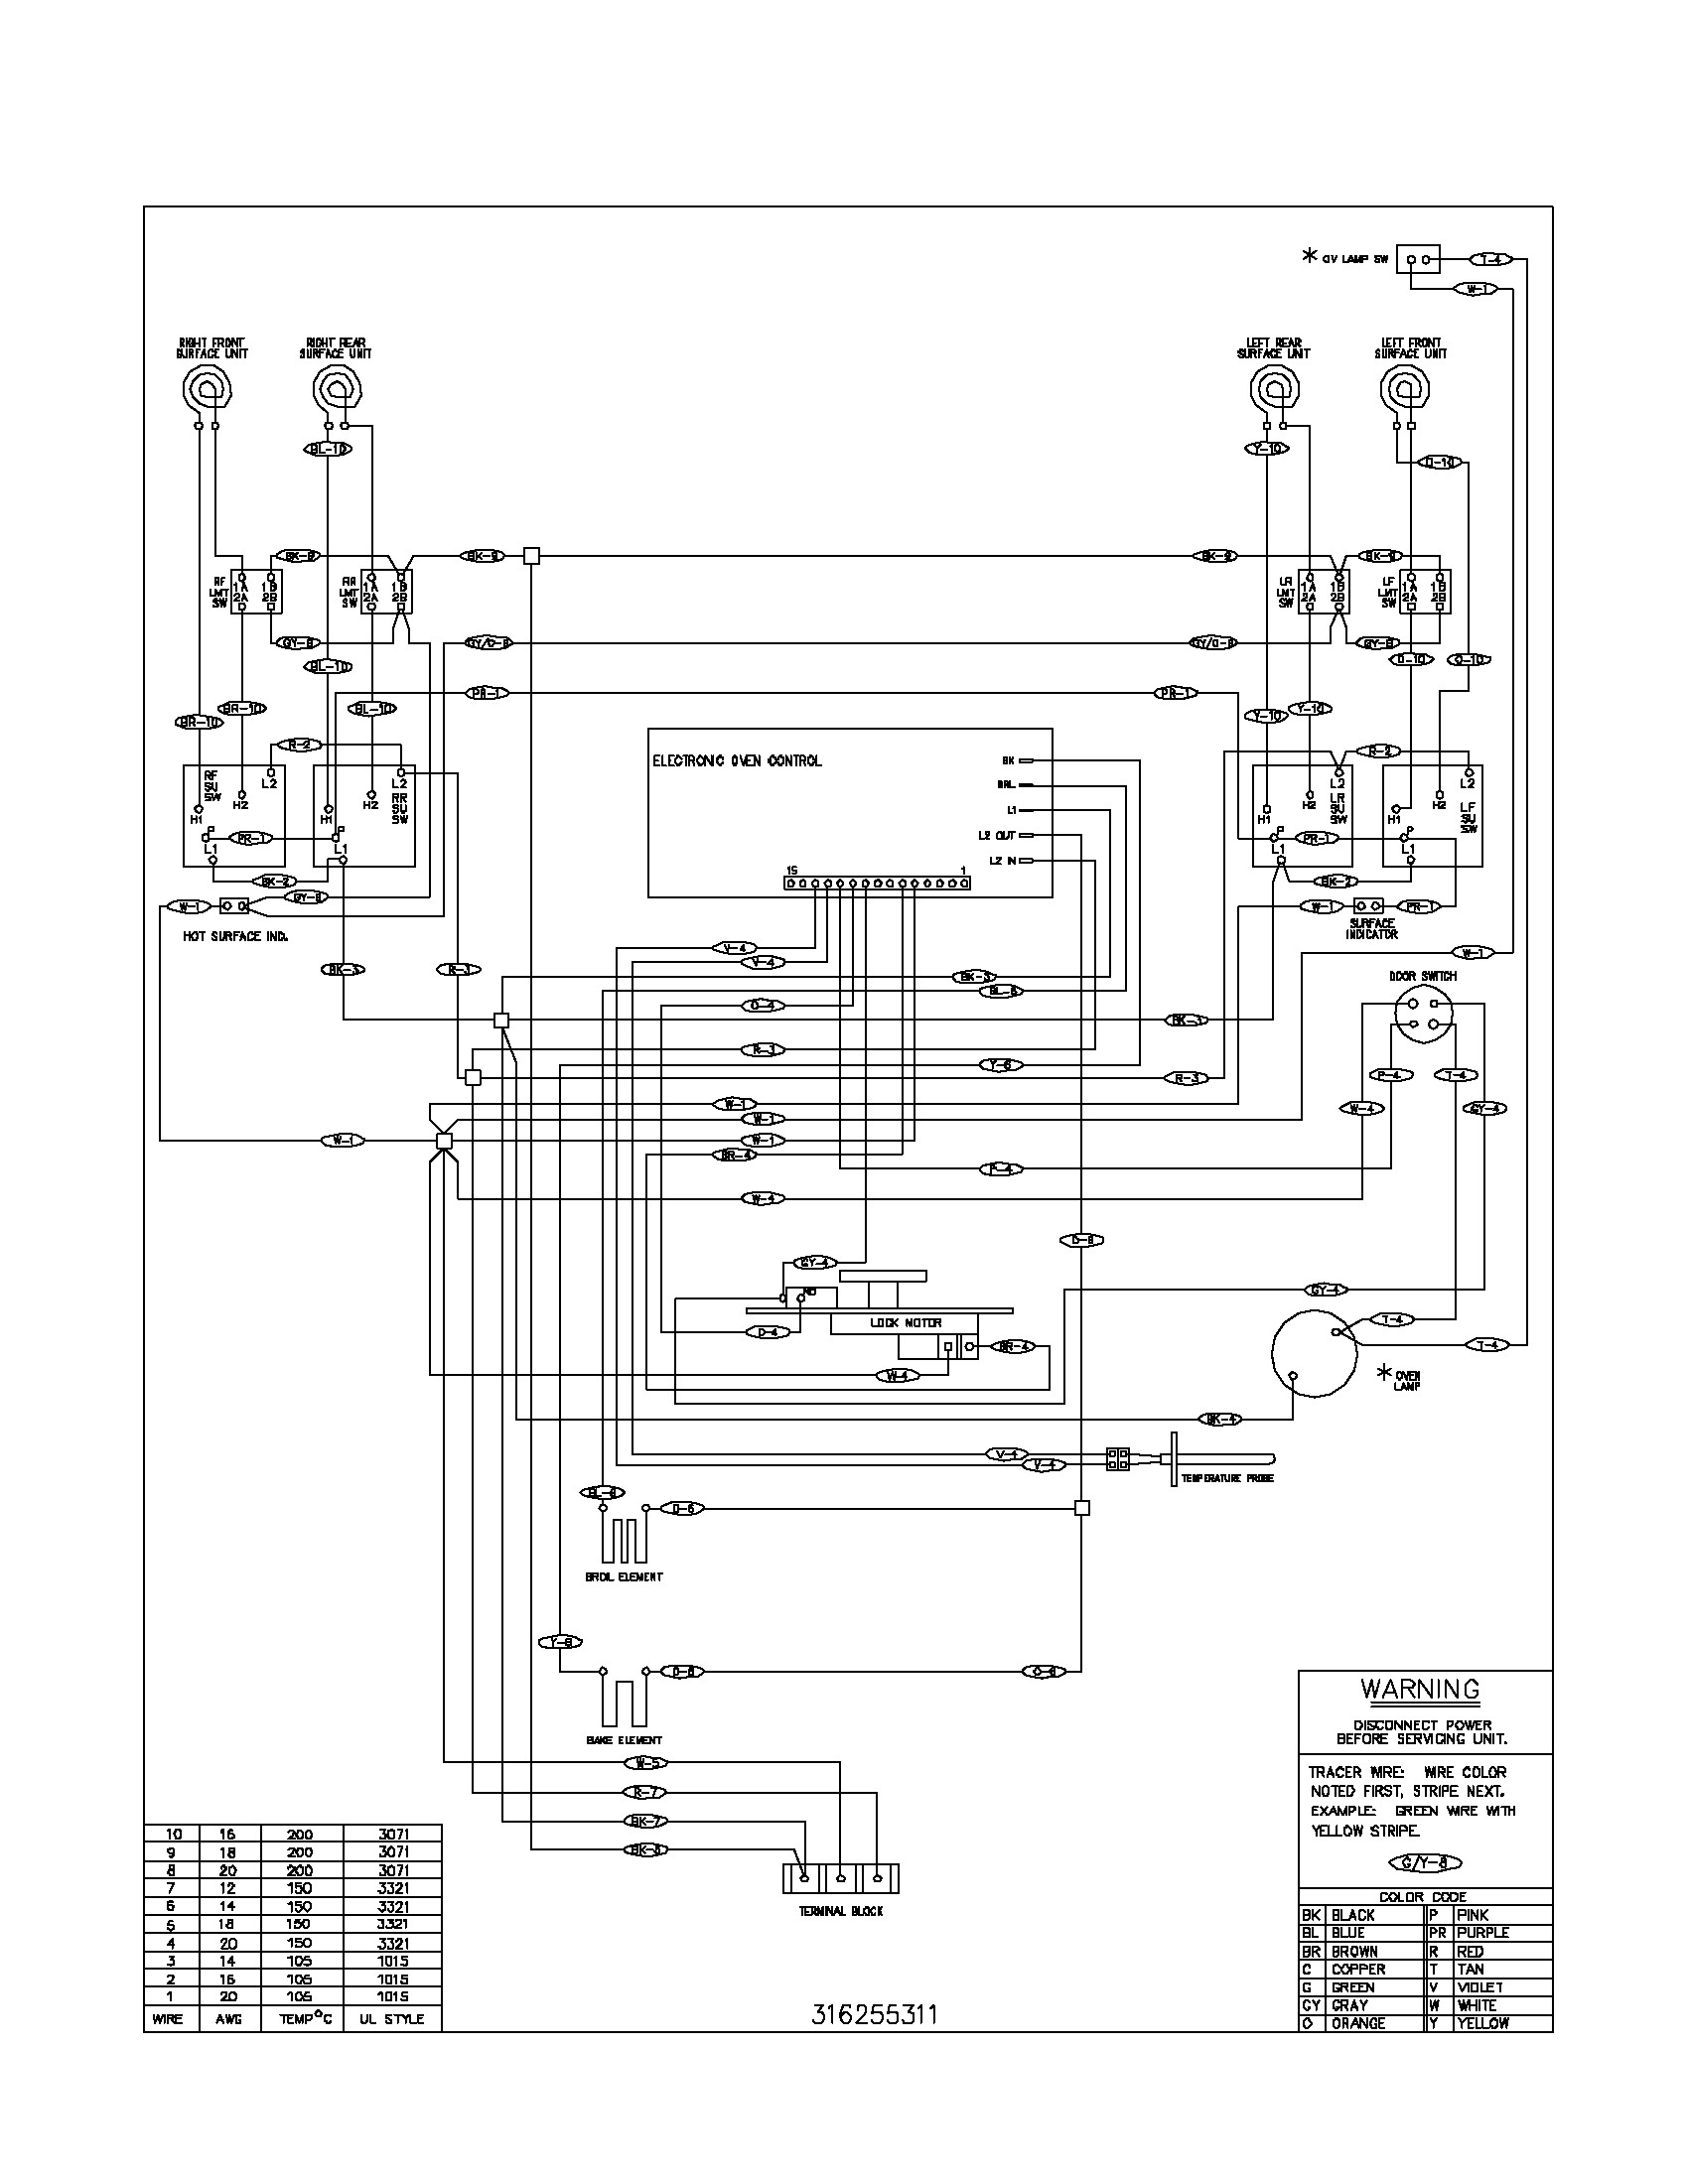 Frigidaire Oven Wiring Diagram Indepth Diagrams Stove Hood Range Basic U2022 Rh Rnetcomputer Co Control Board